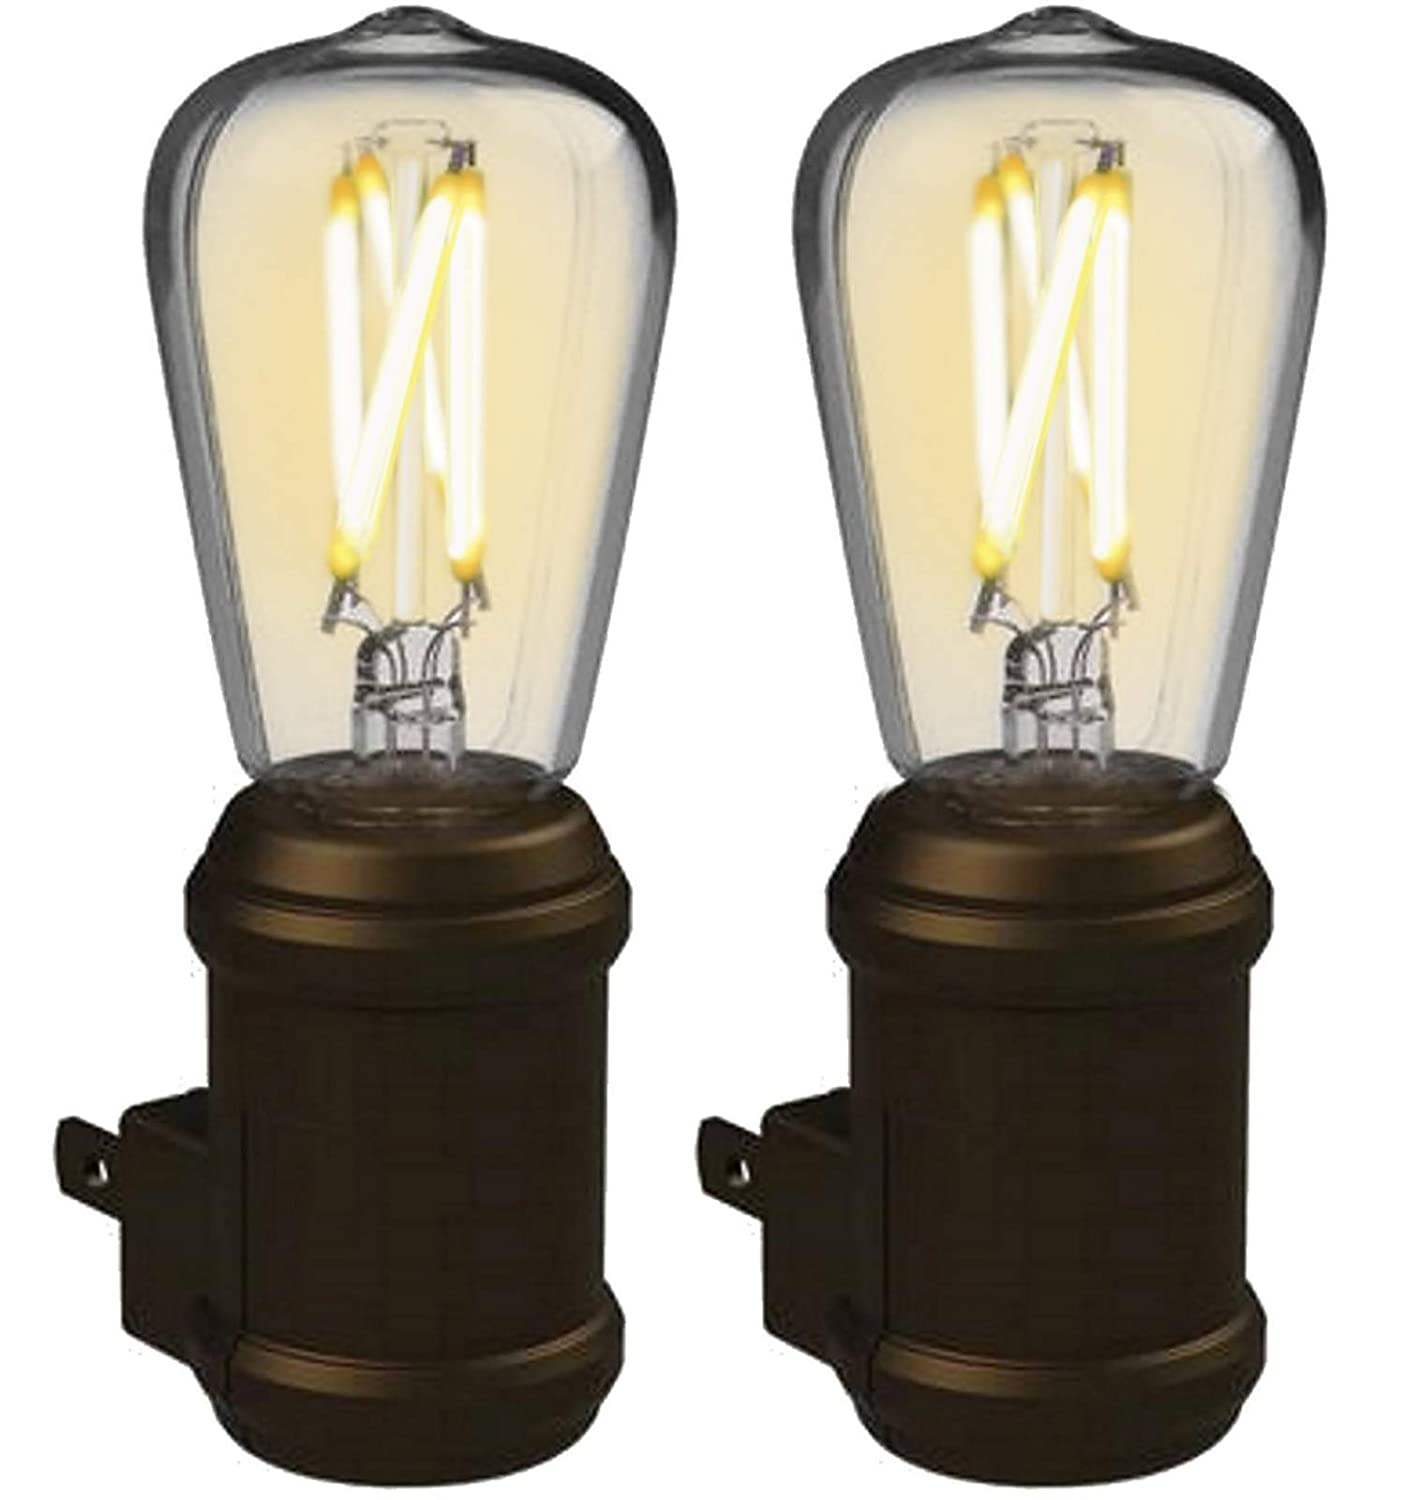 WESTEK Vintage Night Light by Amertac, 2 Pack - Bronze LED Edison Night Light - Plug-in Decorative Night Light with a Stunning Old-Fashioned Design - Dusk to Dawn Nightlight, Plastic Casing, 8 Lumens